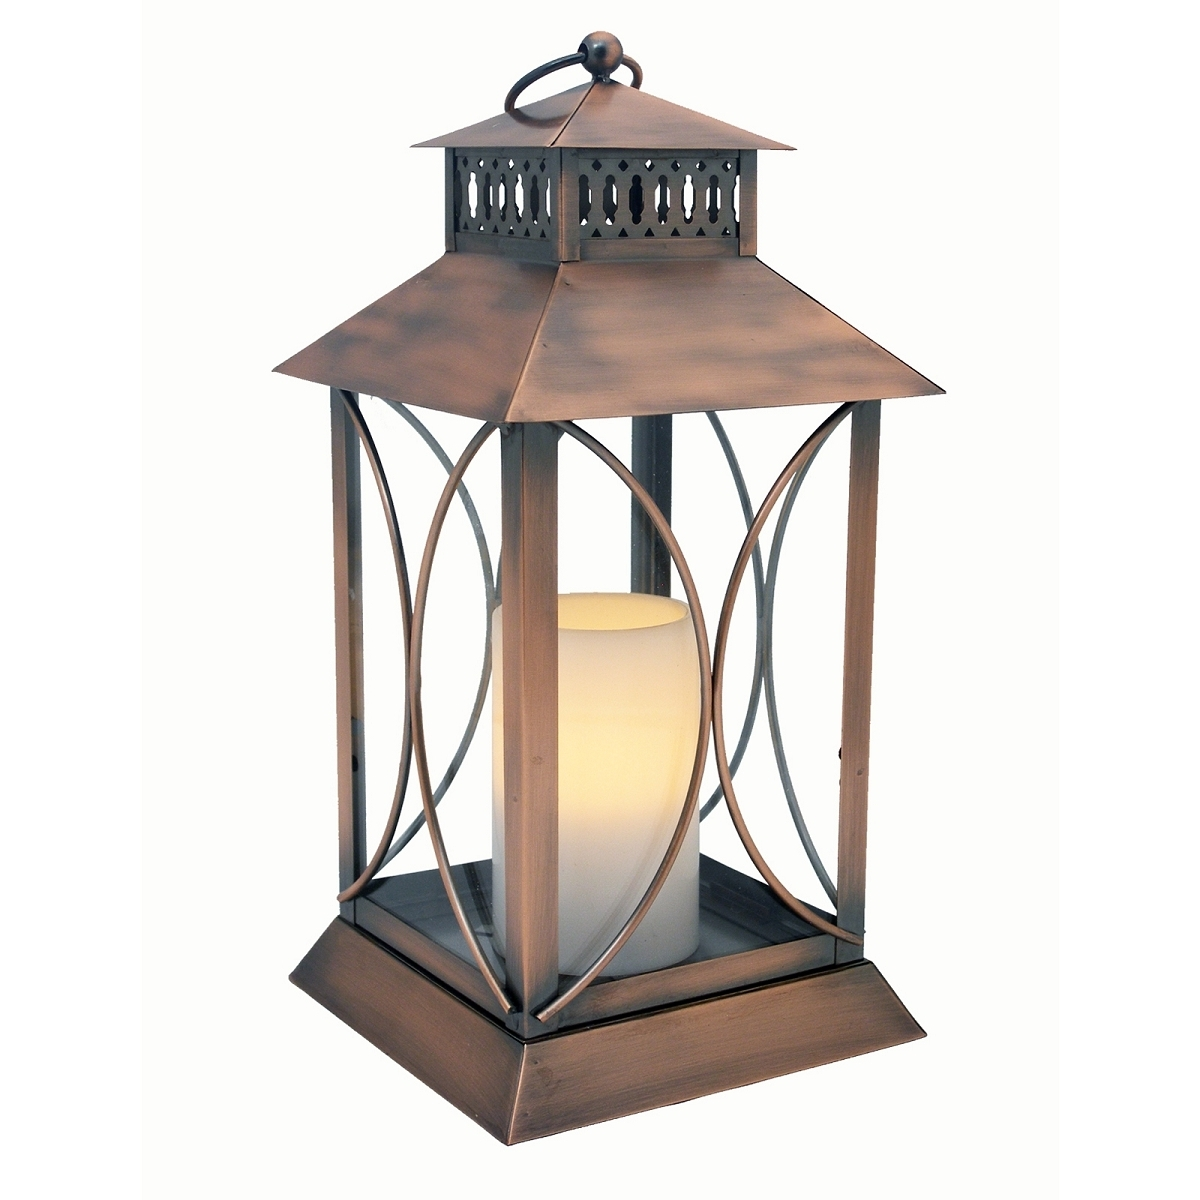 Favorite Neuporte Flameless Candle Lantern With Timer Indoor Outdoor Pertaining To Outdoor Lanterns With Flameless Candles (View 7 of 20)